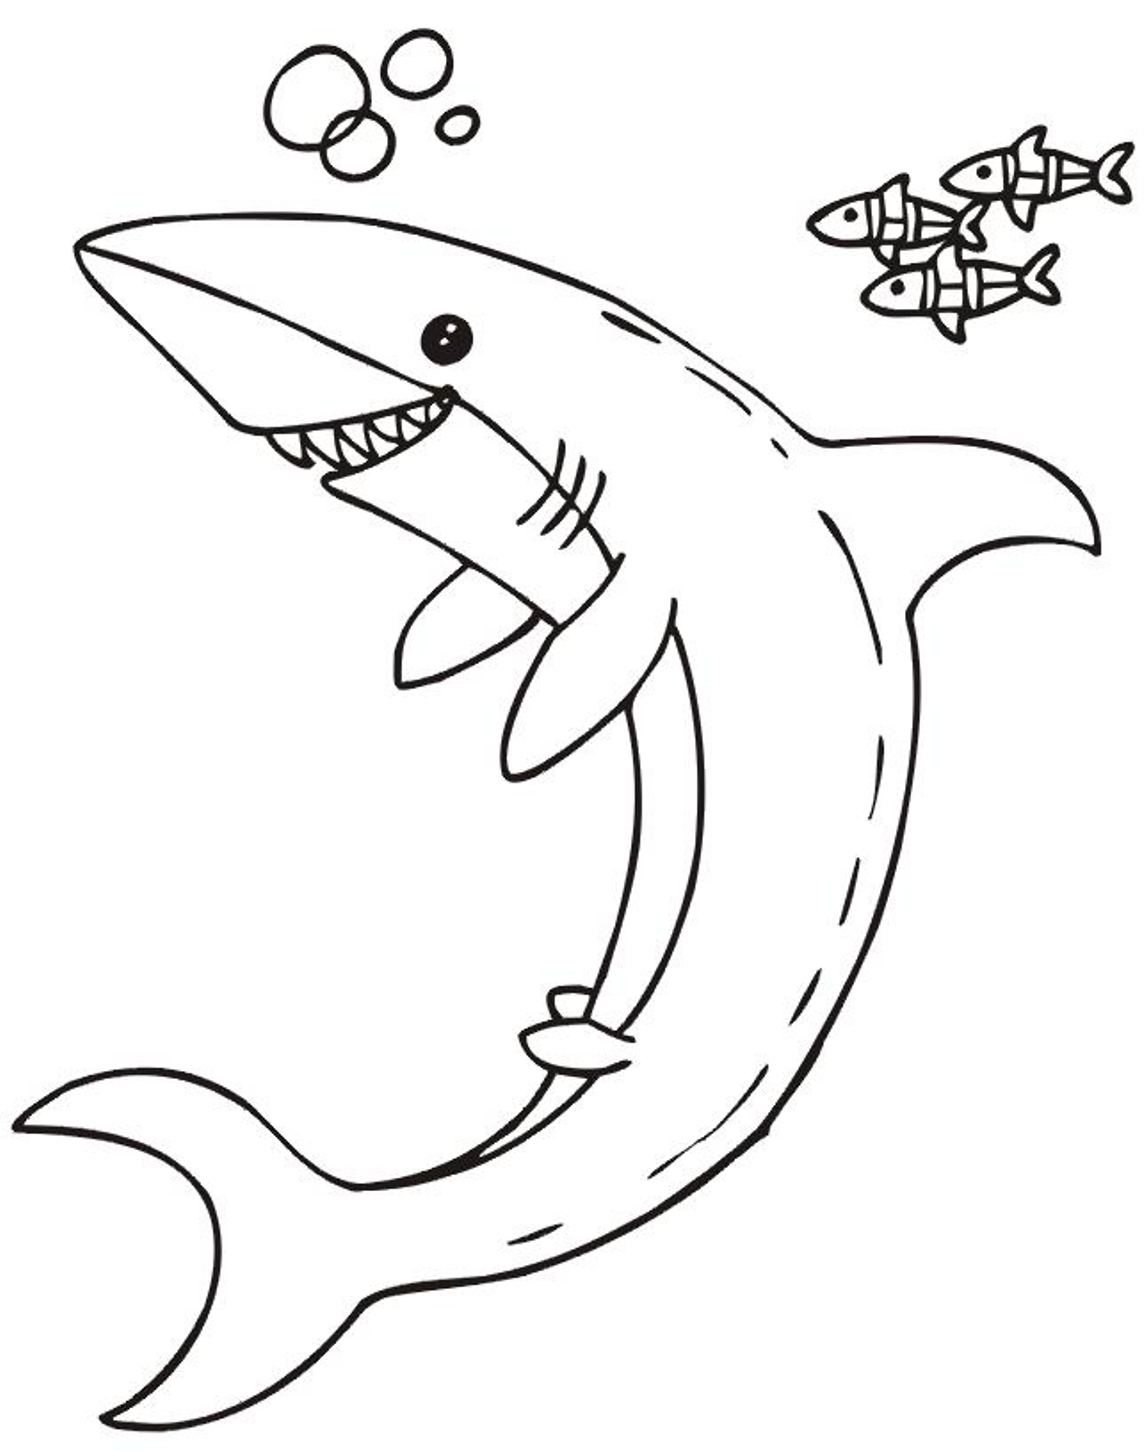 Coloring Pages : Jaws Coloring Pages Shark For Kids Printable Pictures  Snake 49 Extraordinary Jaws Coloring Pages Photo Inspirations ~ Ny19 Votes